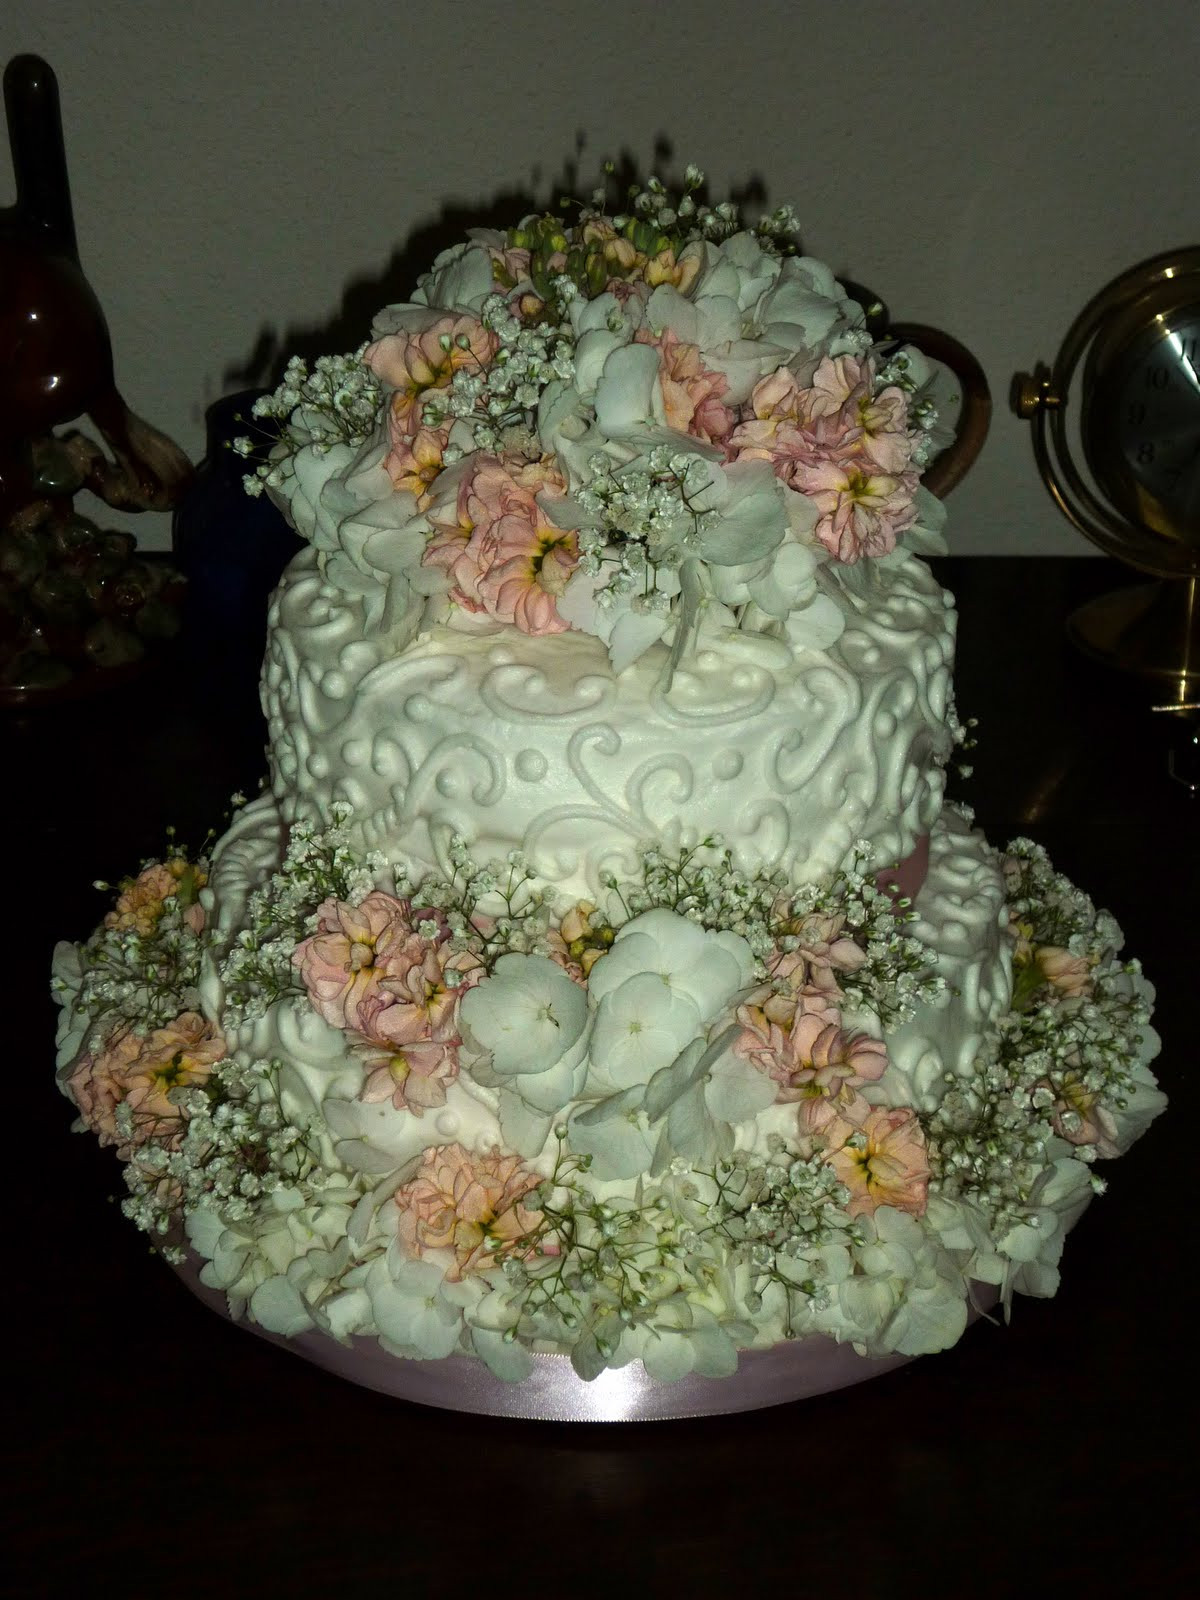 Little Wedding Cakes  How to make a small wedding cake idea in 2017